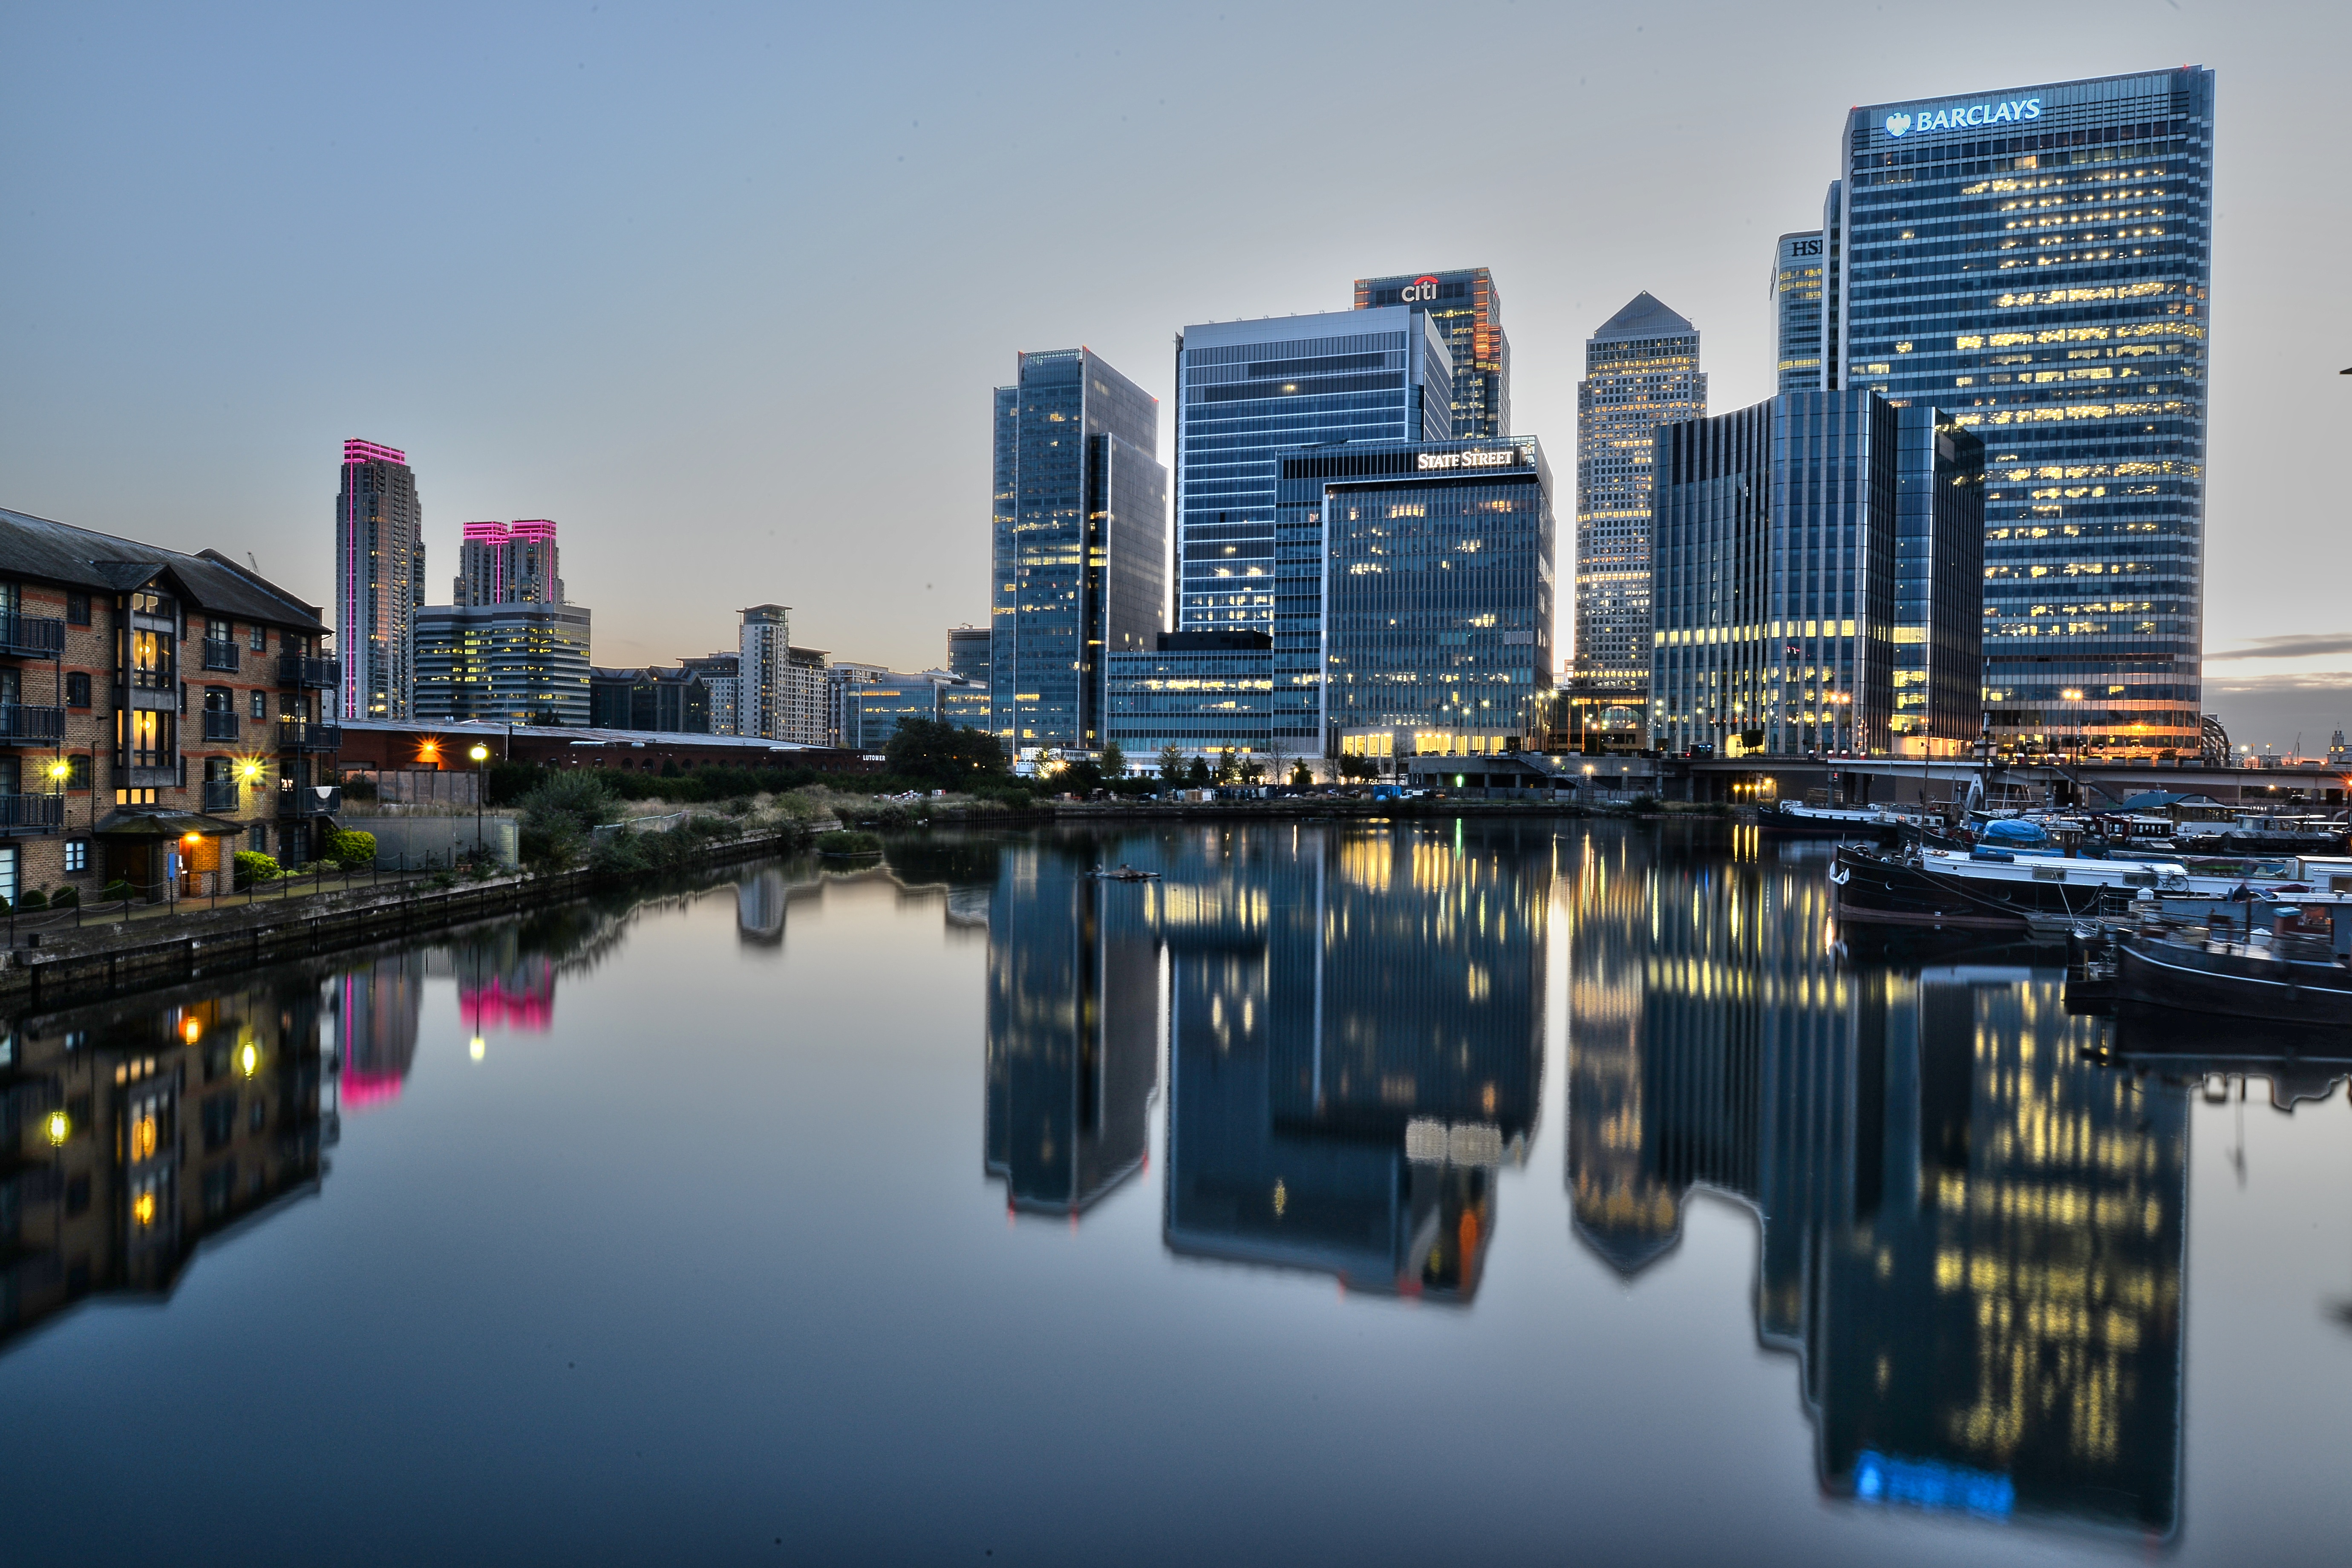 Canary_Wharf_after_sunset_(14950863732)